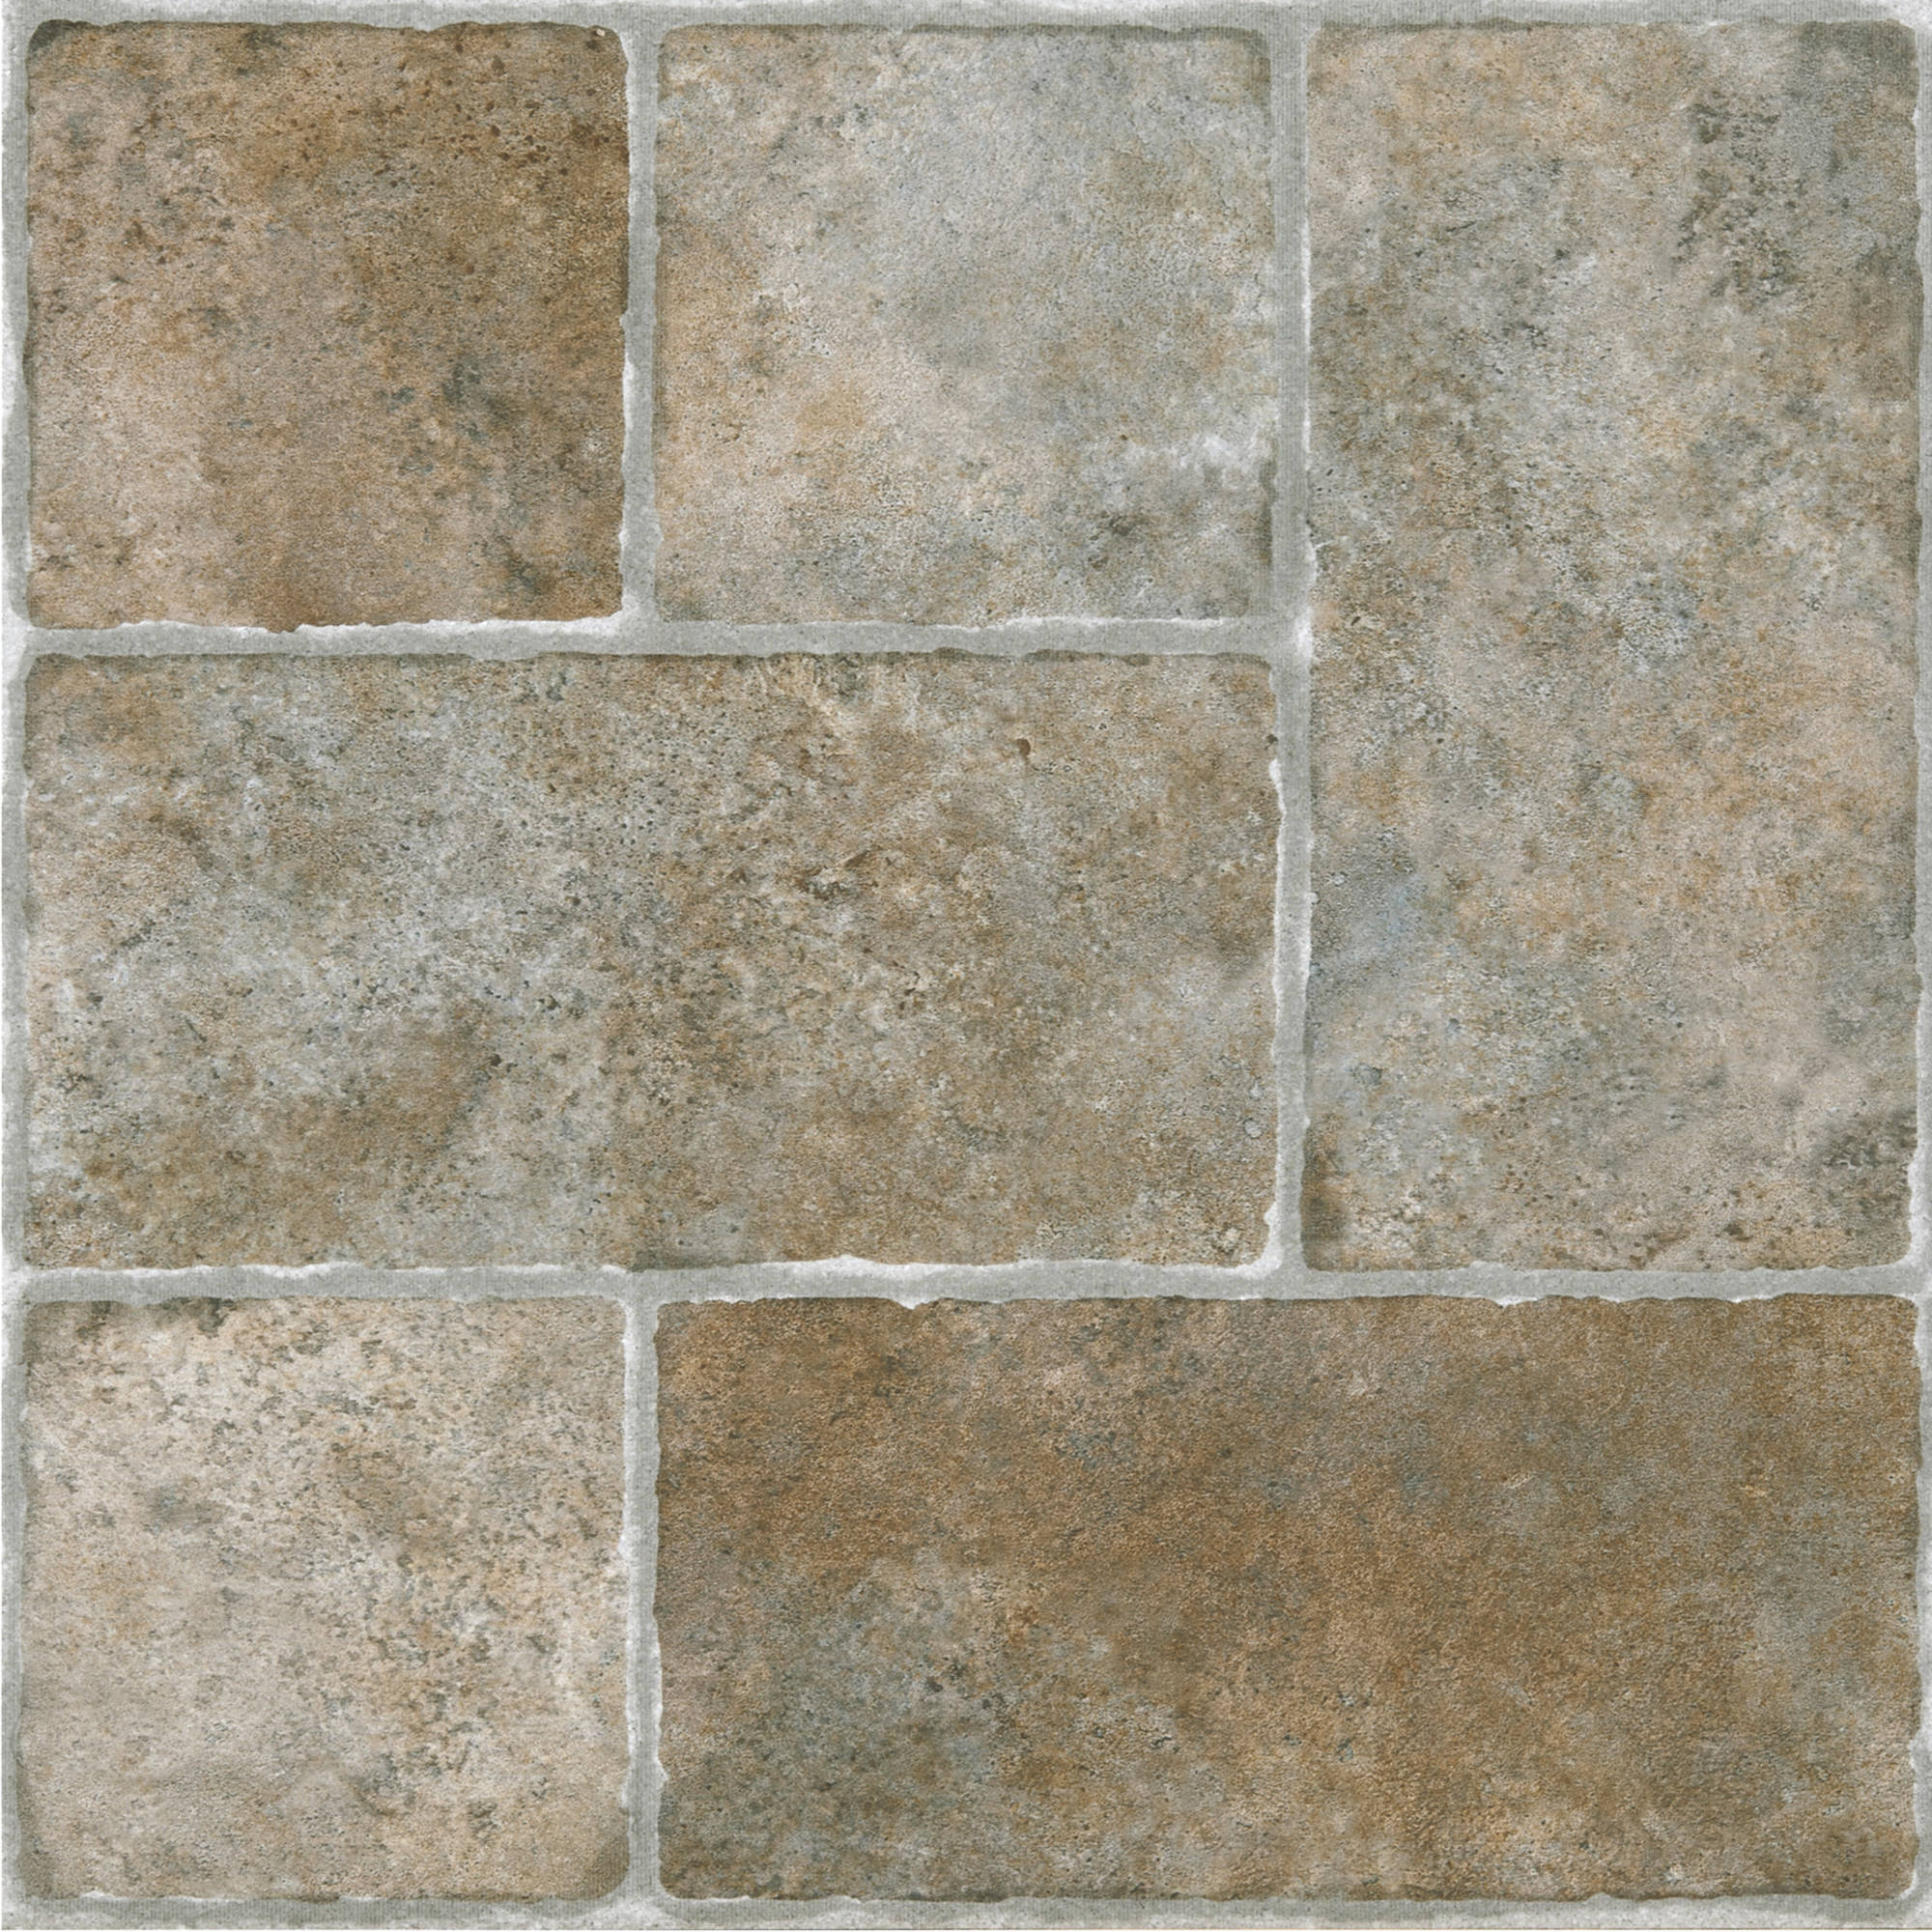 Nexus quartose granite 12x12 self adhesive vinyl floor tile 20 nexus quartose granite 12x12 self adhesive vinyl floor tile 20 tiles20 sqft walmart dailygadgetfo Image collections